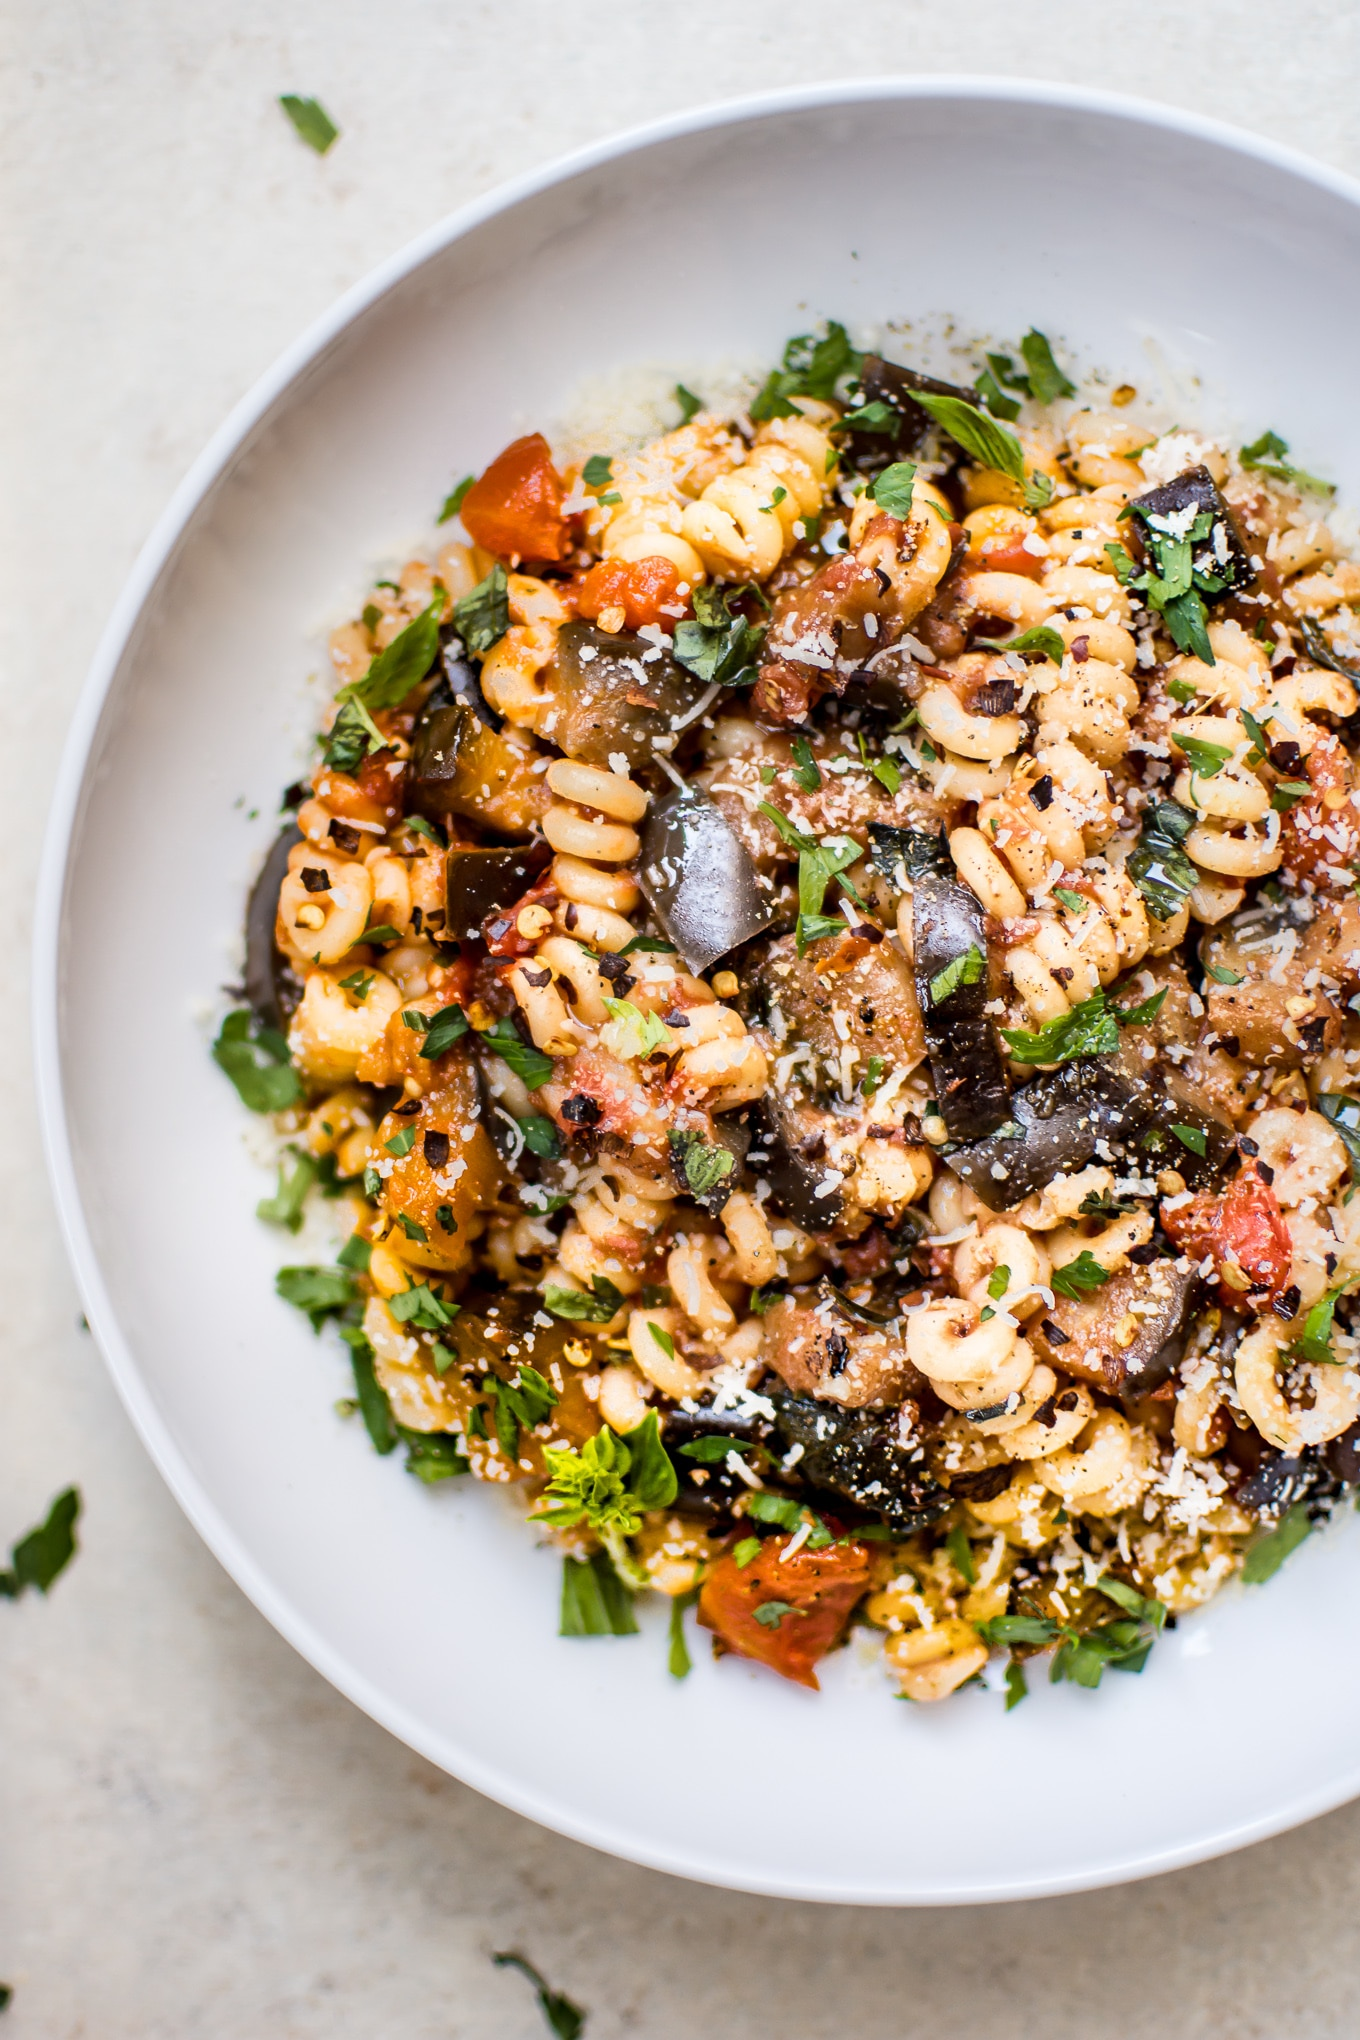 This spicy eggplant pasta recipe is a simple, healthy, and quick vegetarian pasta dish. It's ready in under half an hour - perfect for busy weeknights.